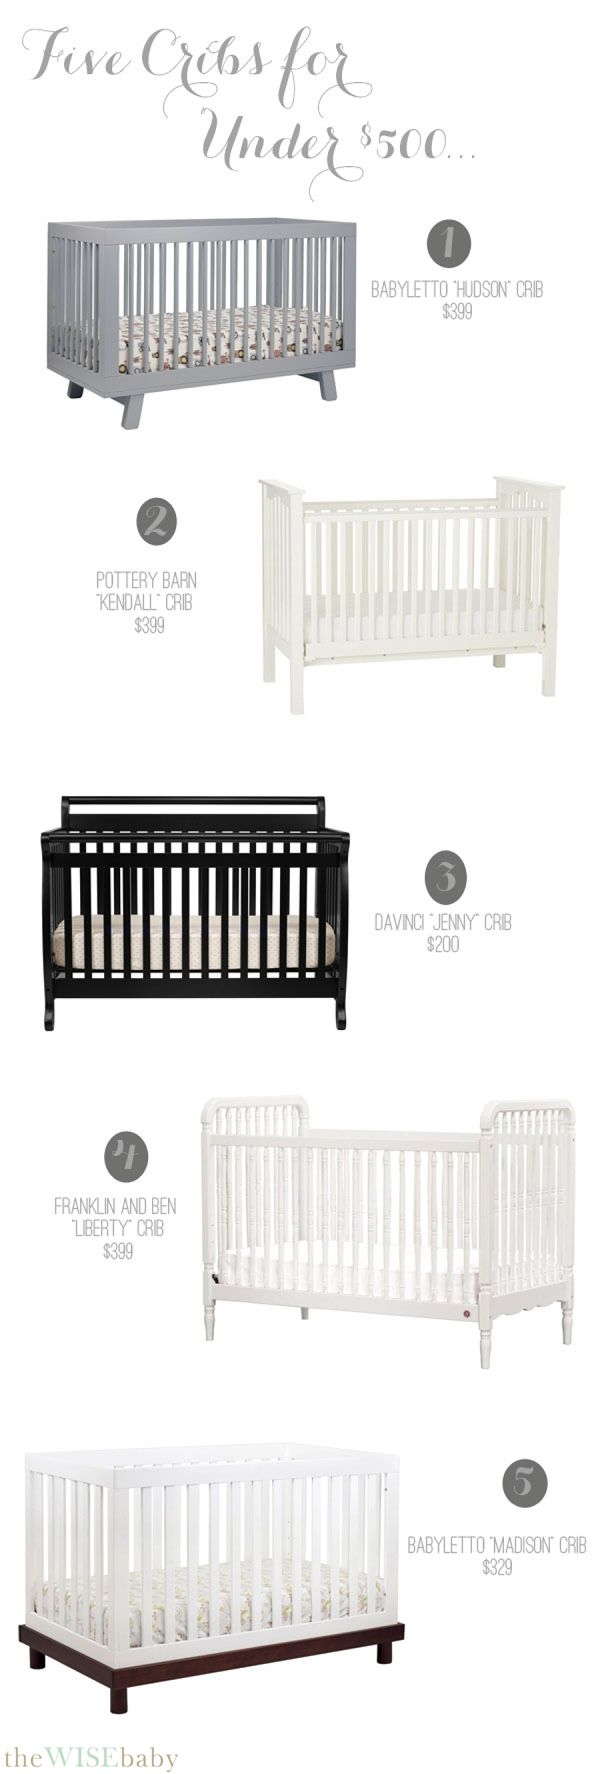 Crib for sale vernon bc - Finding The Perfect Crib Can Be Tough Especially Because Most Of Us Mamas Are On A Budget For Our Nursery Today S Post Features 5 Affordable Baby Cribs T